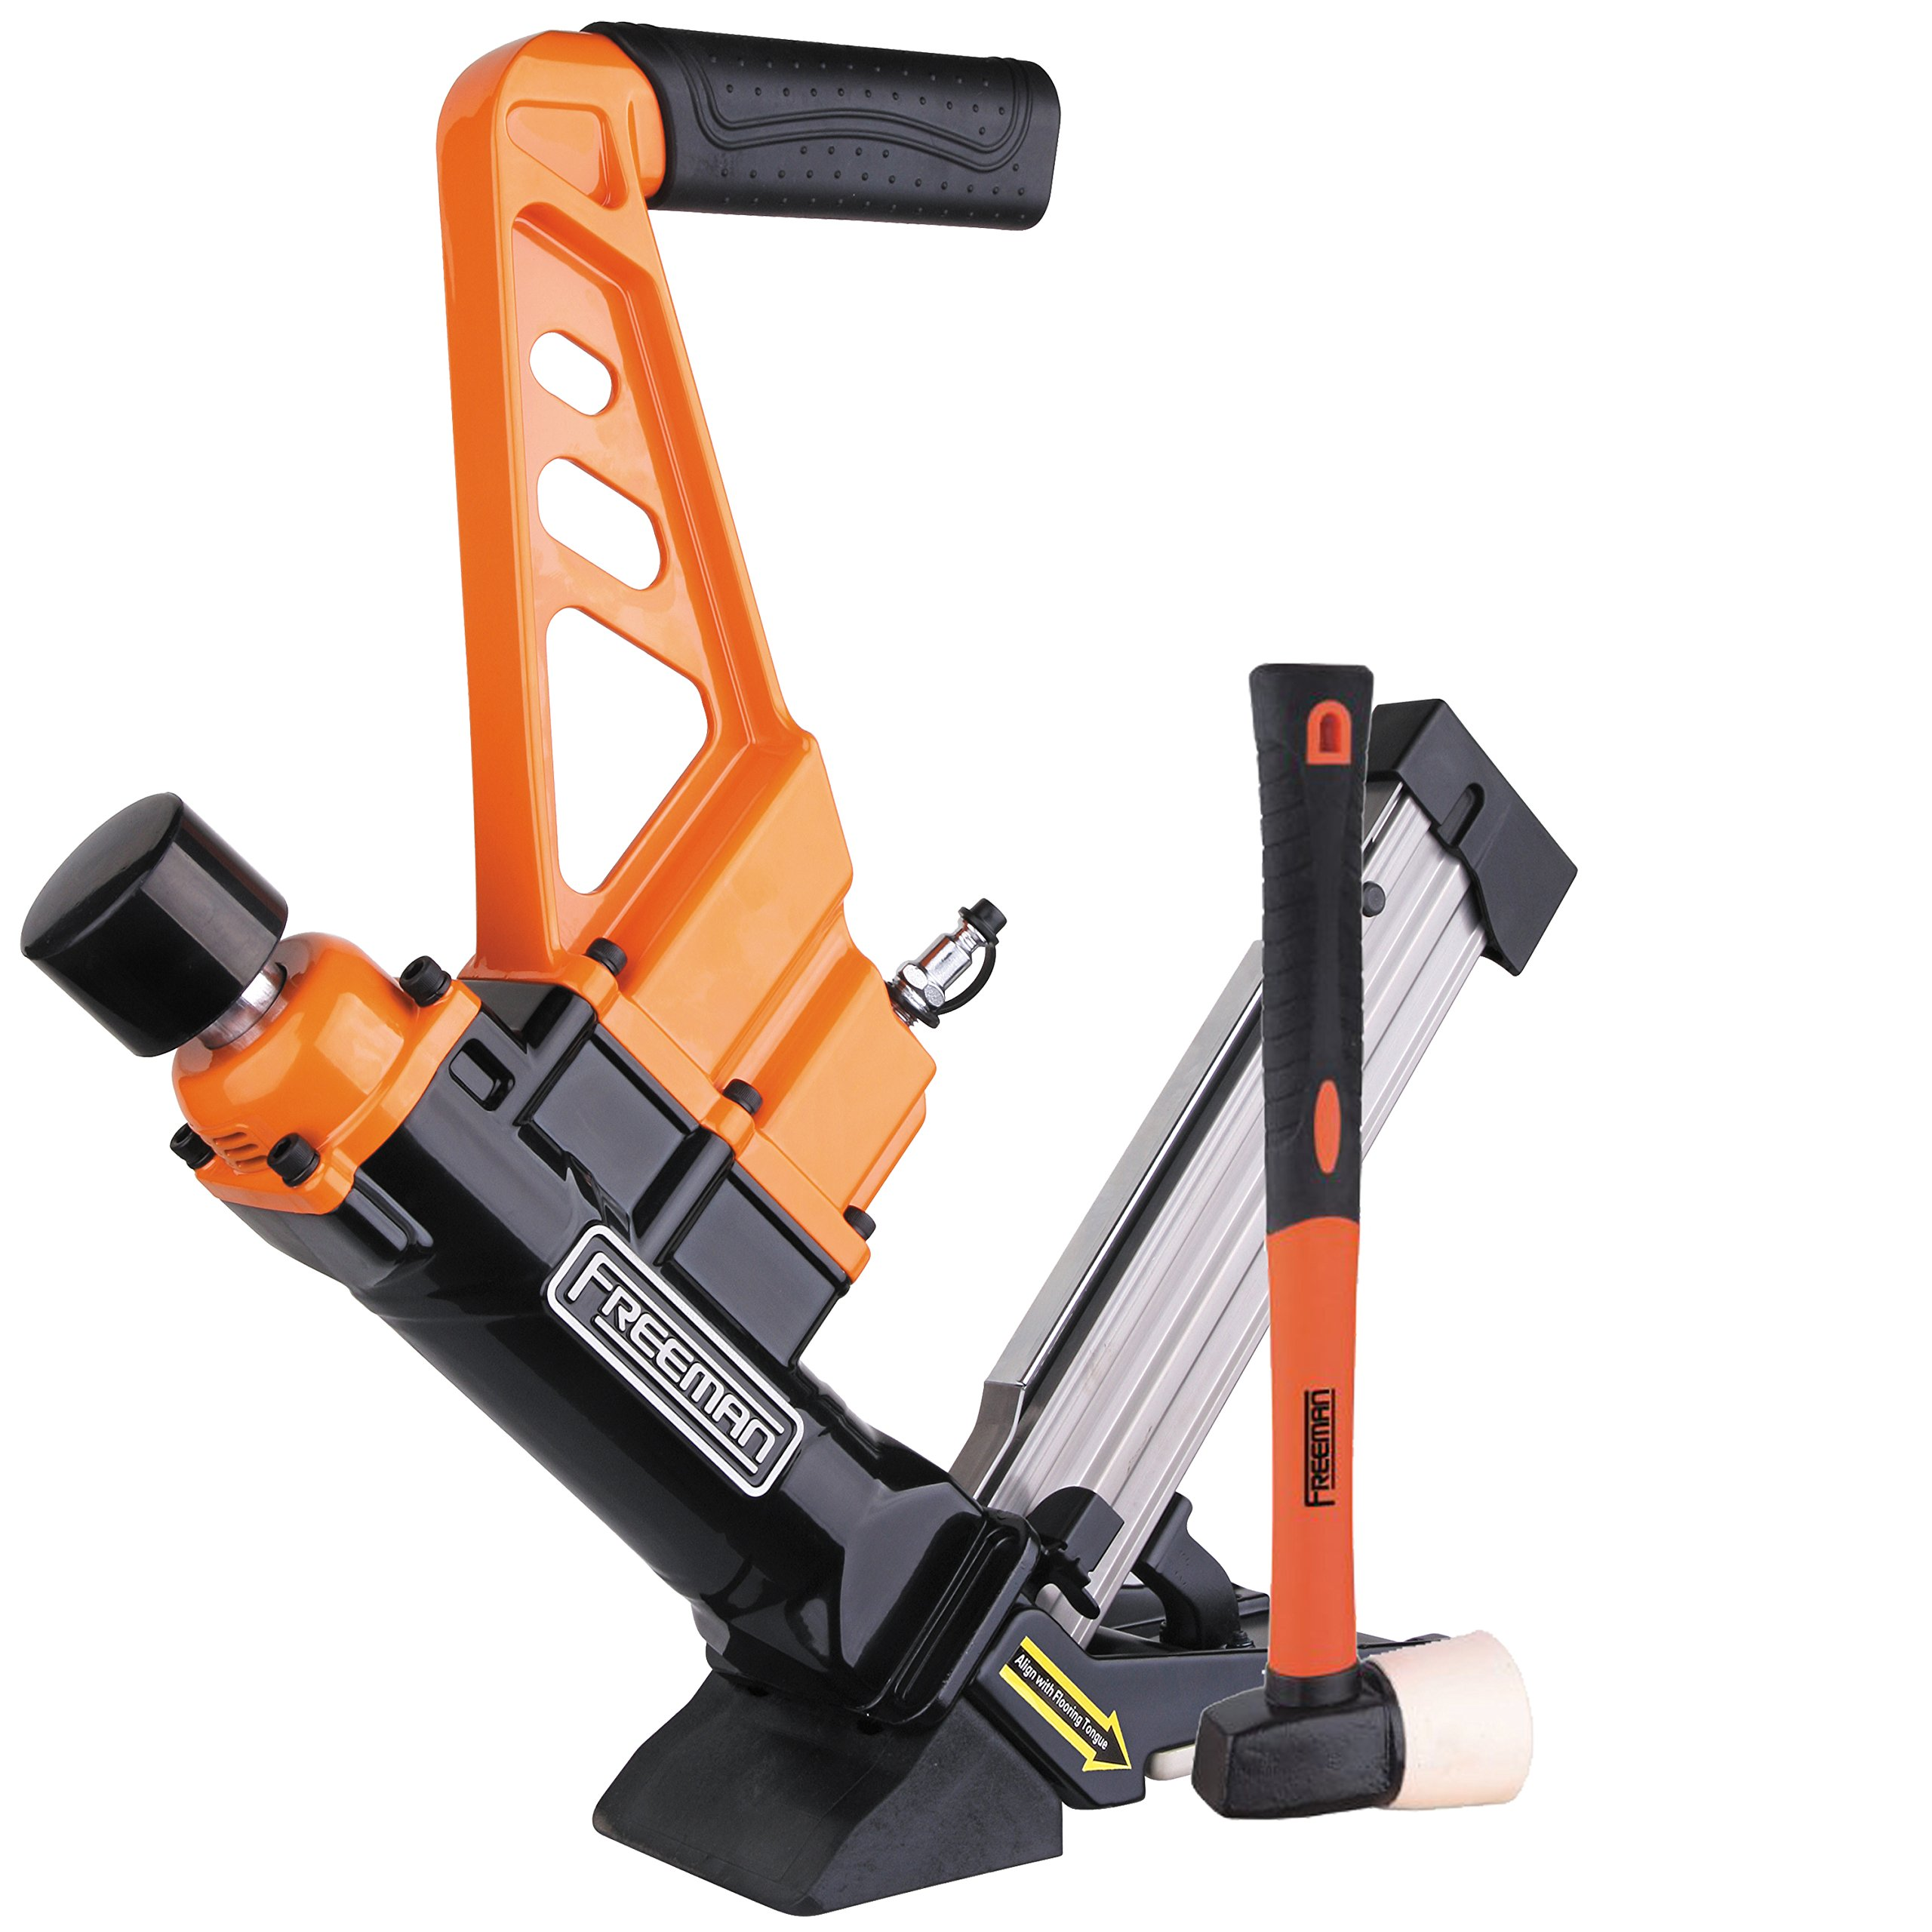 Freeman PDX50C 3-in-1 Flooring Cleat Nailer and Stapler Ergonomic & Lightweight Nail Gun for Tongue & Grove & Hardwood Flooring, Uses T-Cleats, L-Cleats & Staples